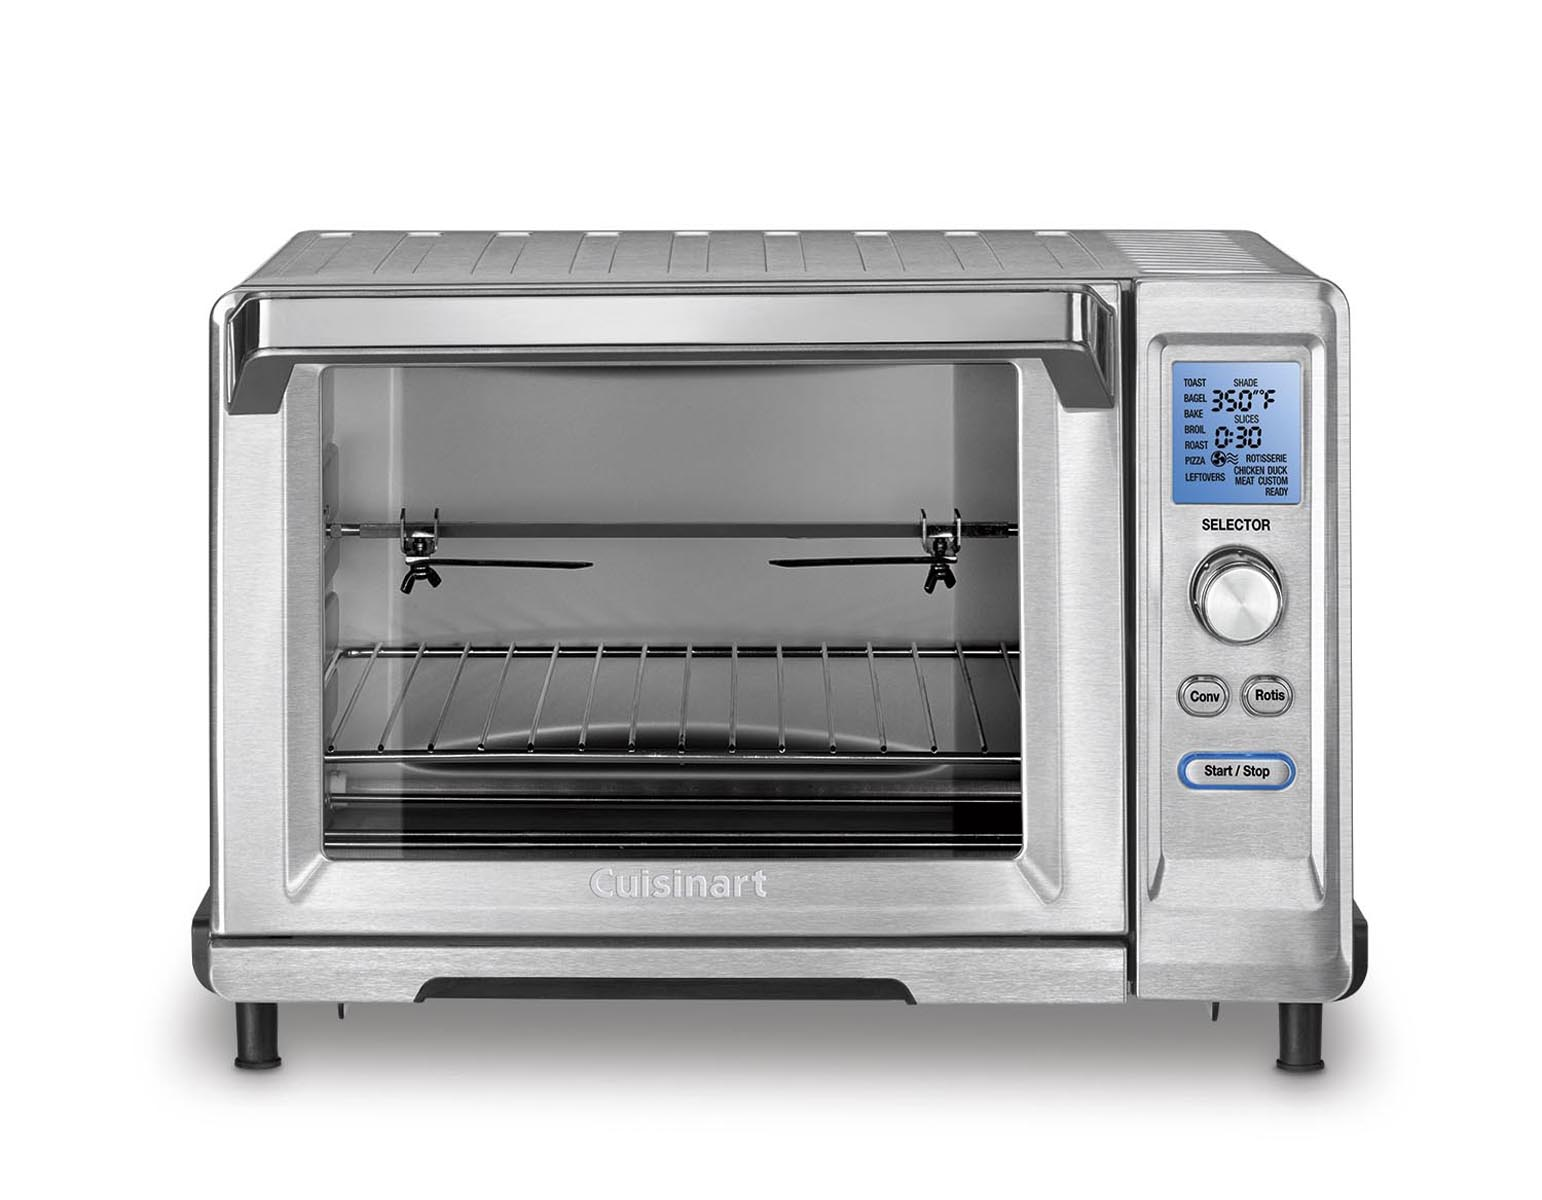 Cuisinart TOB-200 Rotisserie Convection Toaster Oven, Stainless Steel PartNumber: 00859386000P